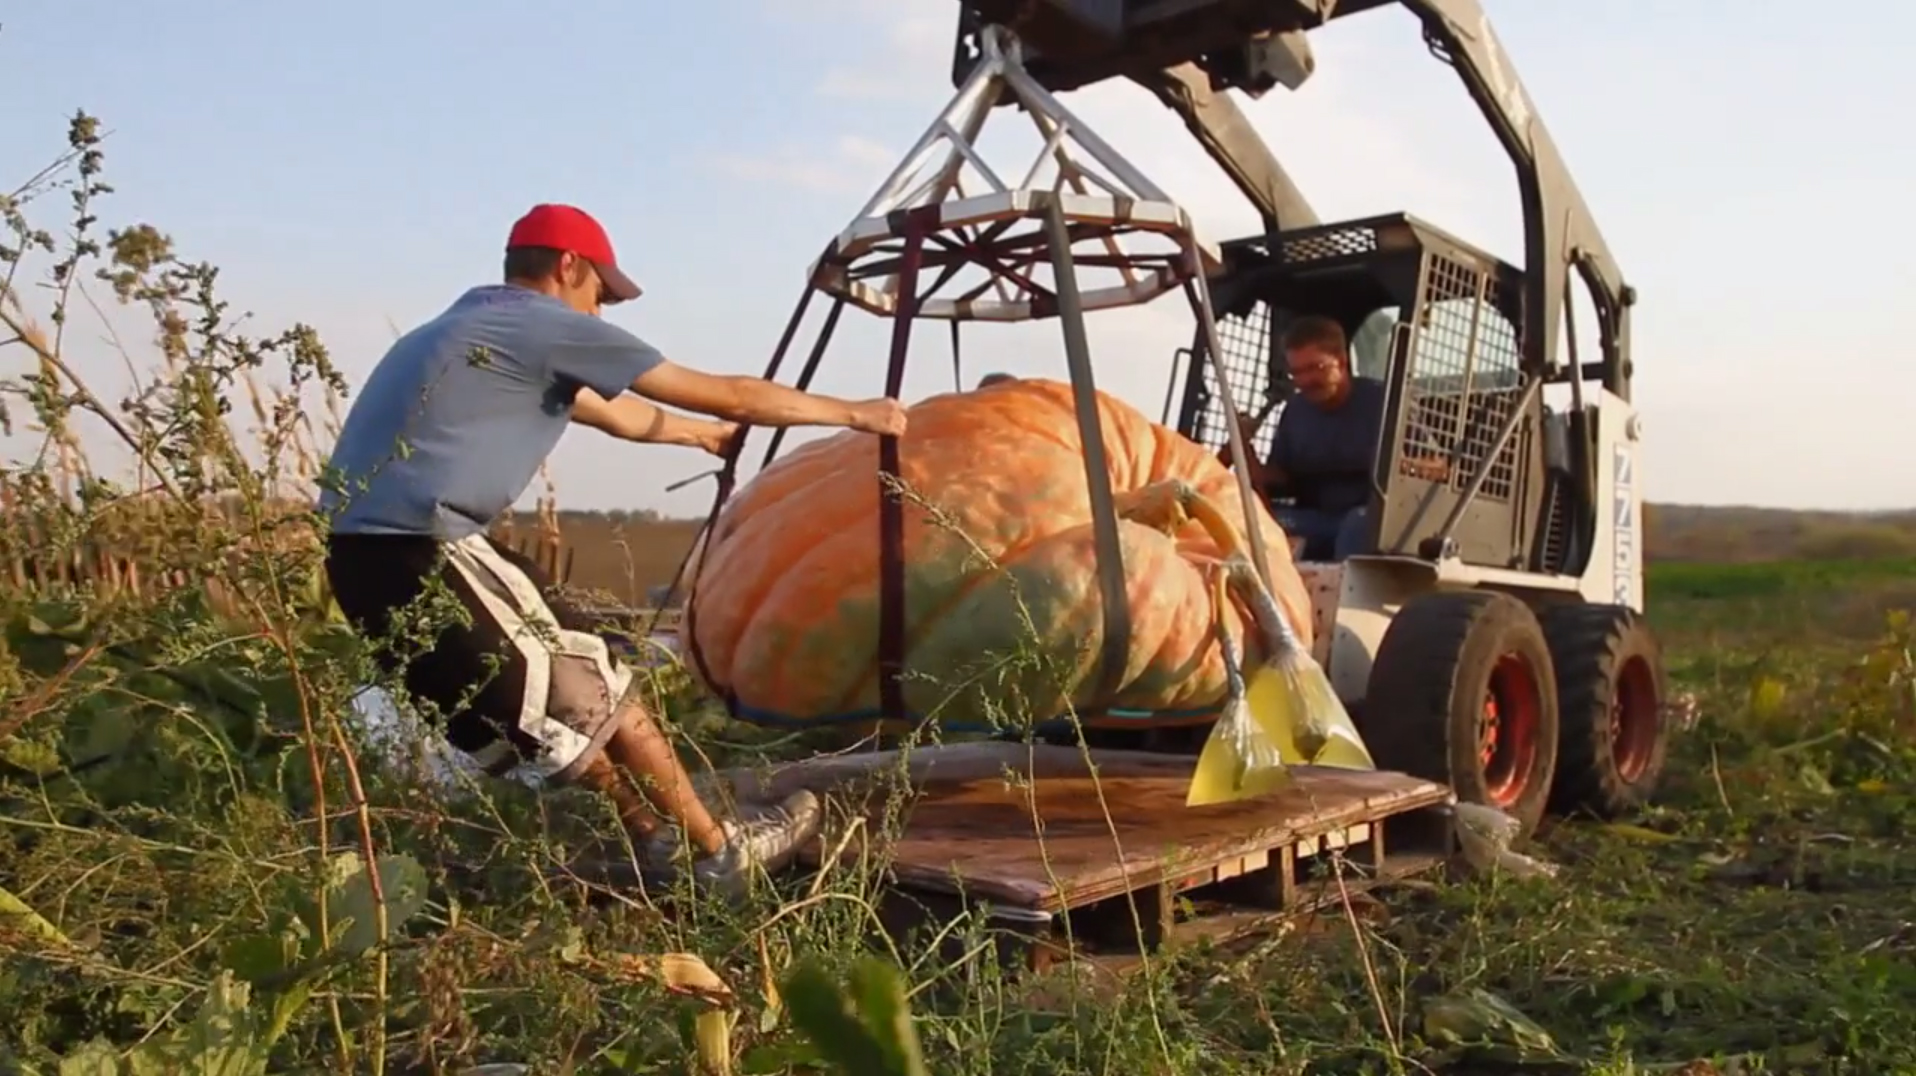 Chad Revier of New London, Minn. has been growing pumpkins competitively for four years. He is the current state record holder, and says he is motivated by the pursuit of breaking his personal best weight every year.